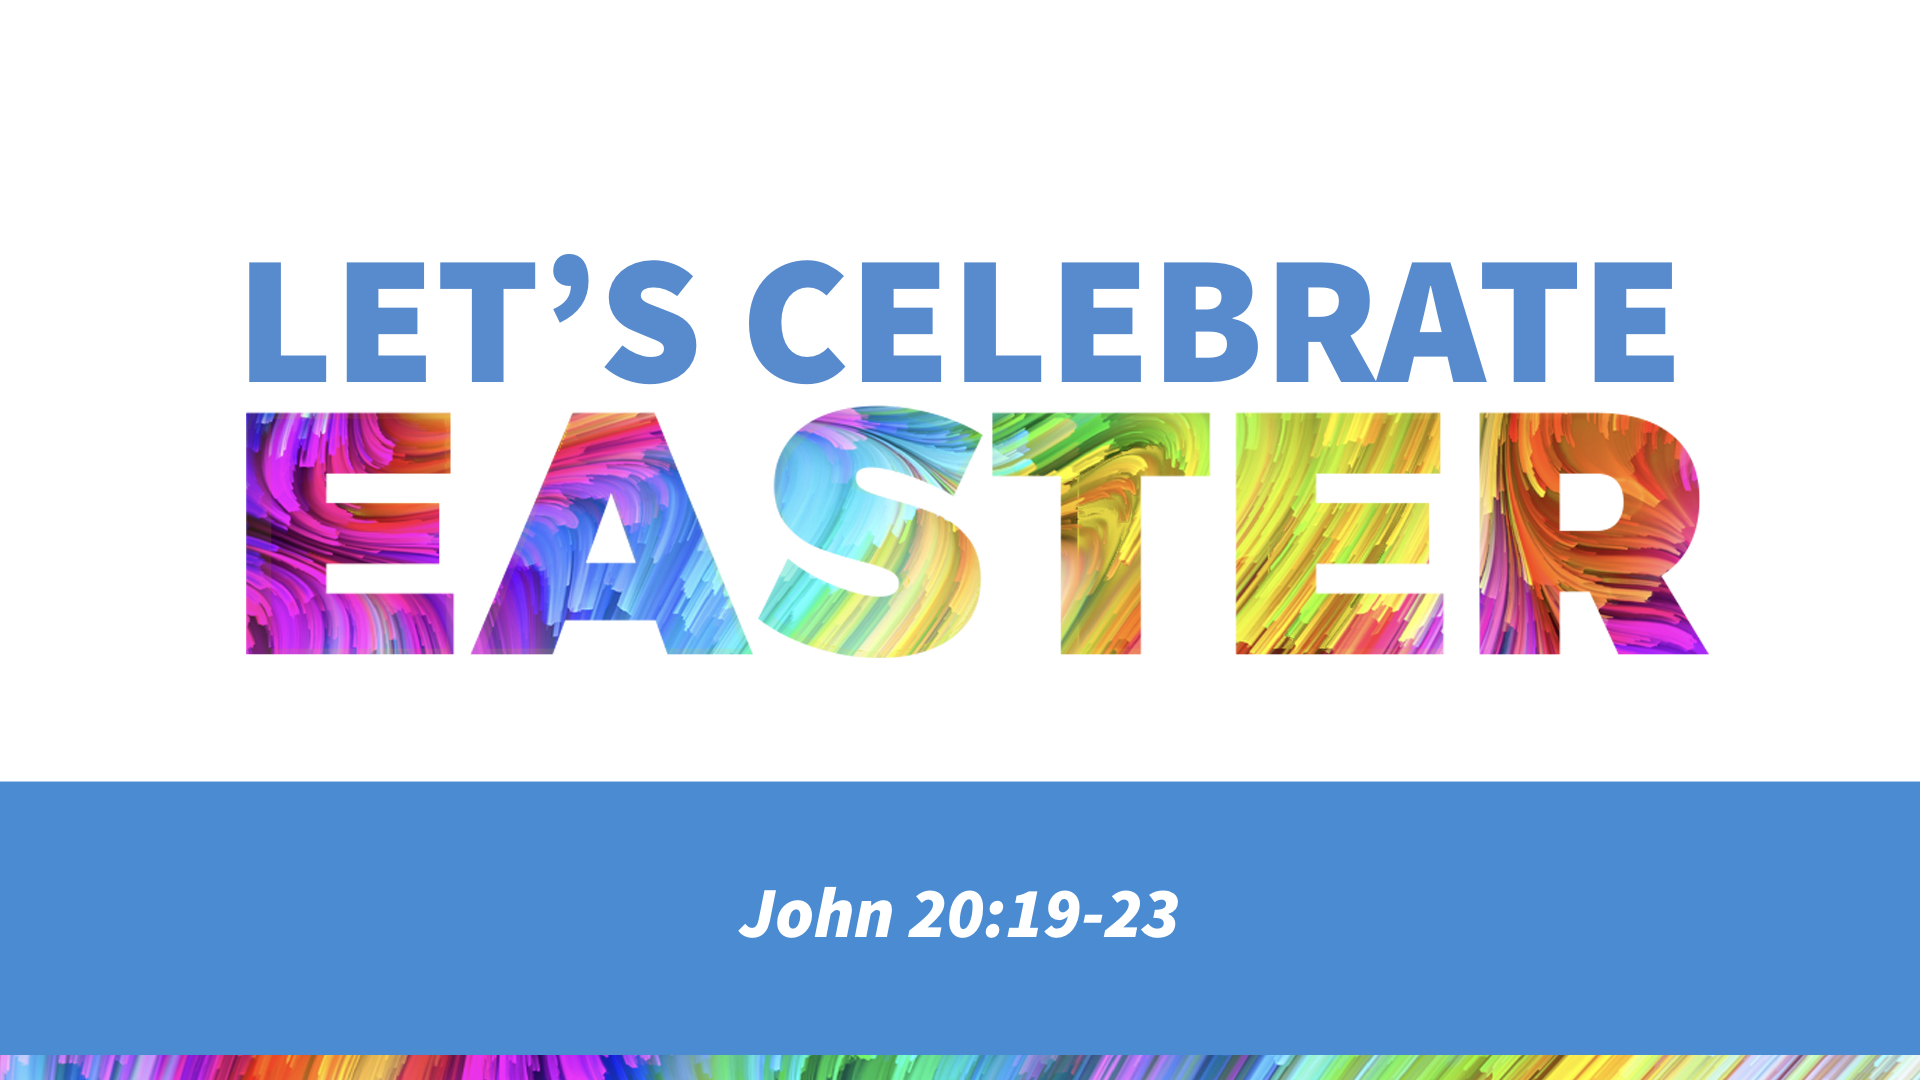 Let's Celebrate Easter.012.jpeg